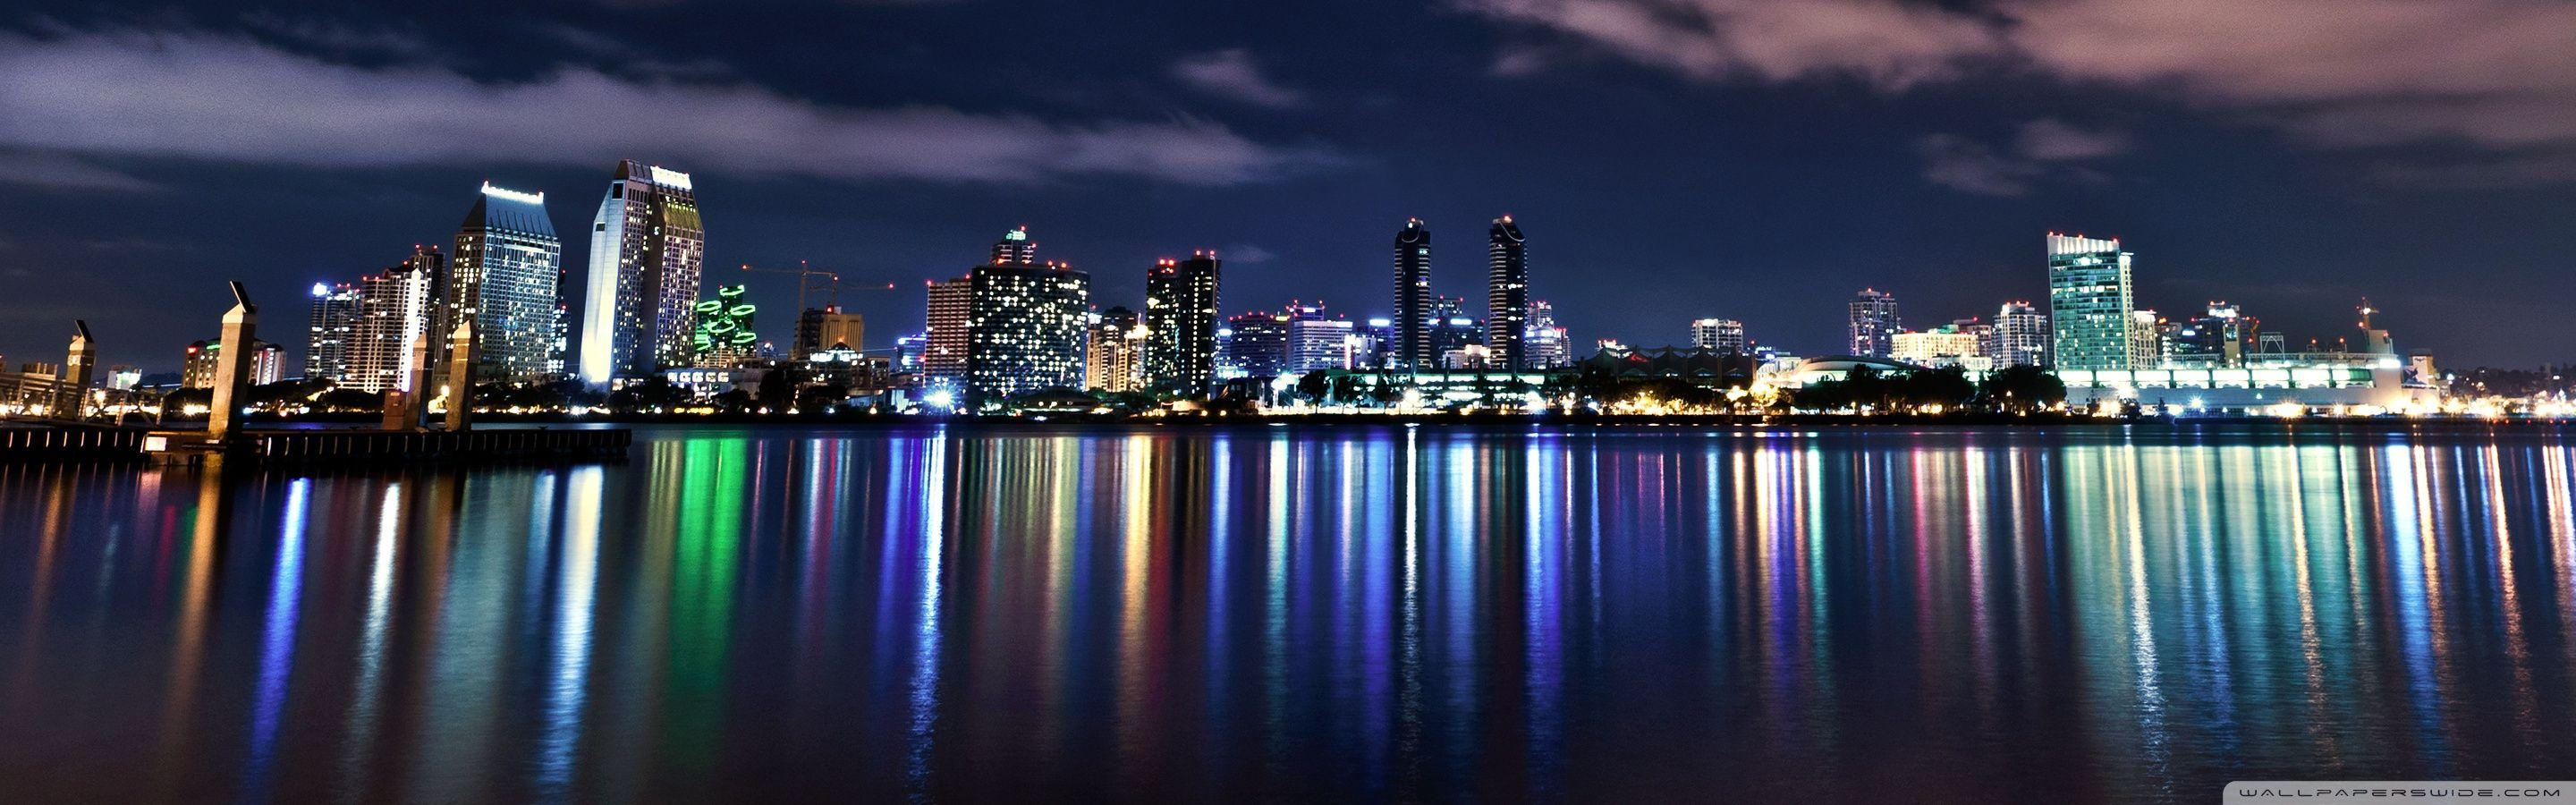 Dallas Skyline Wallpapers Wallpaper Cave